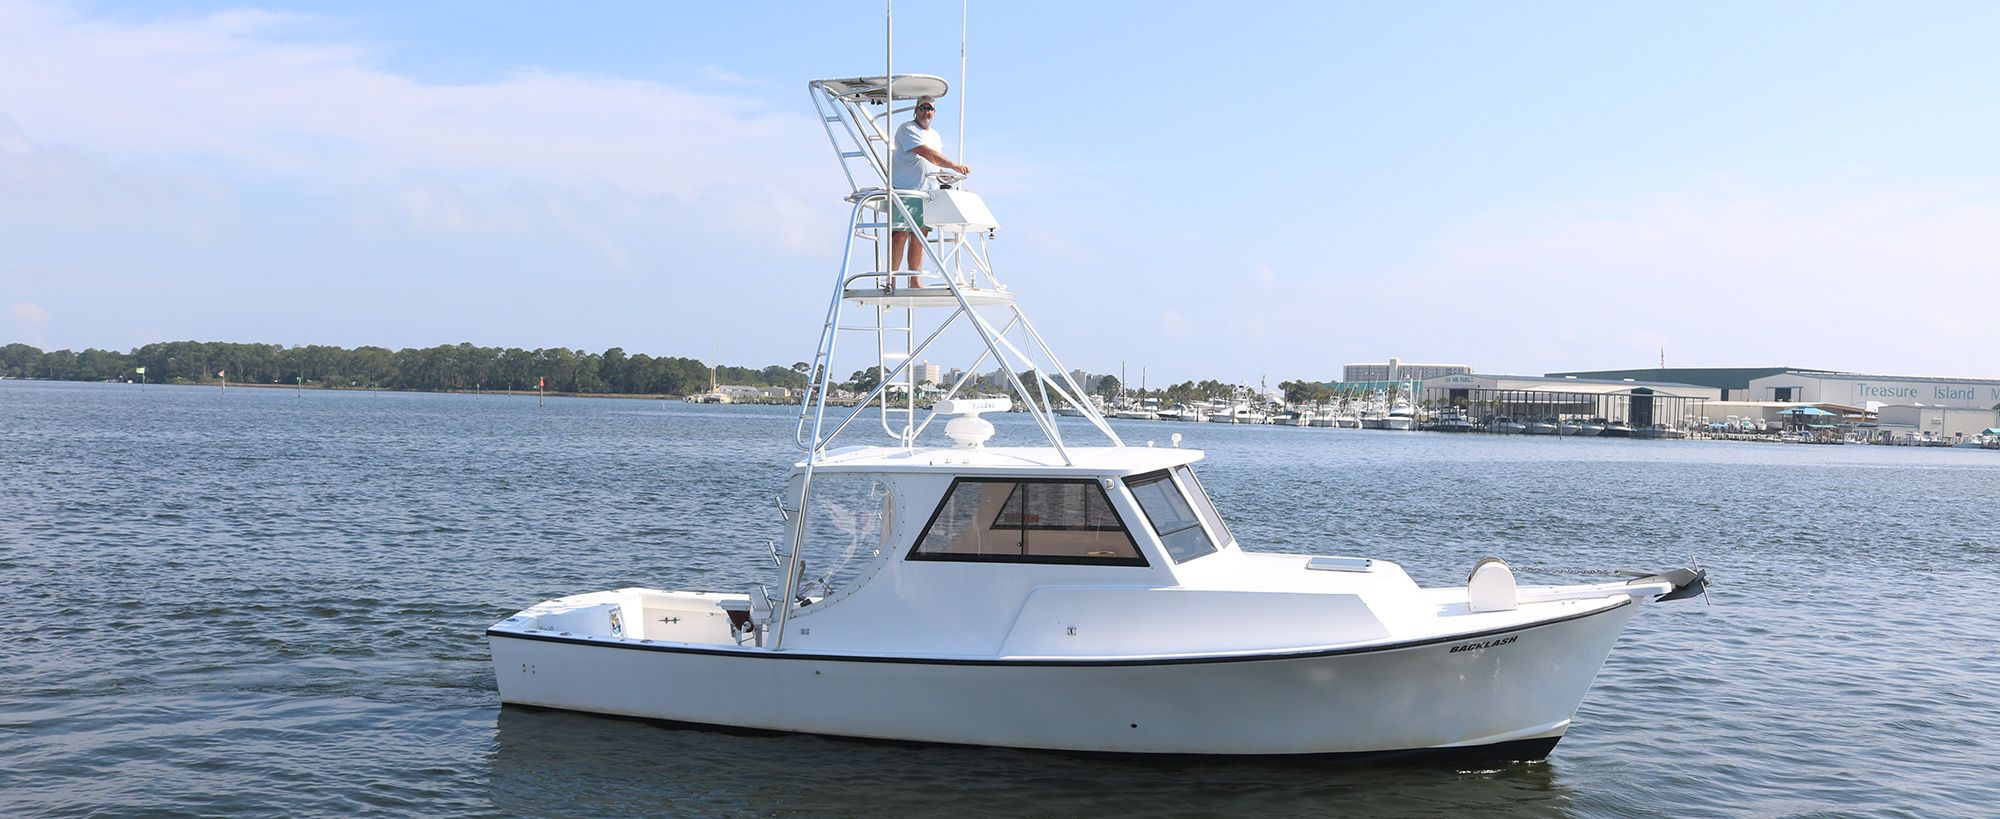 deep sea fishing boat named Backlash